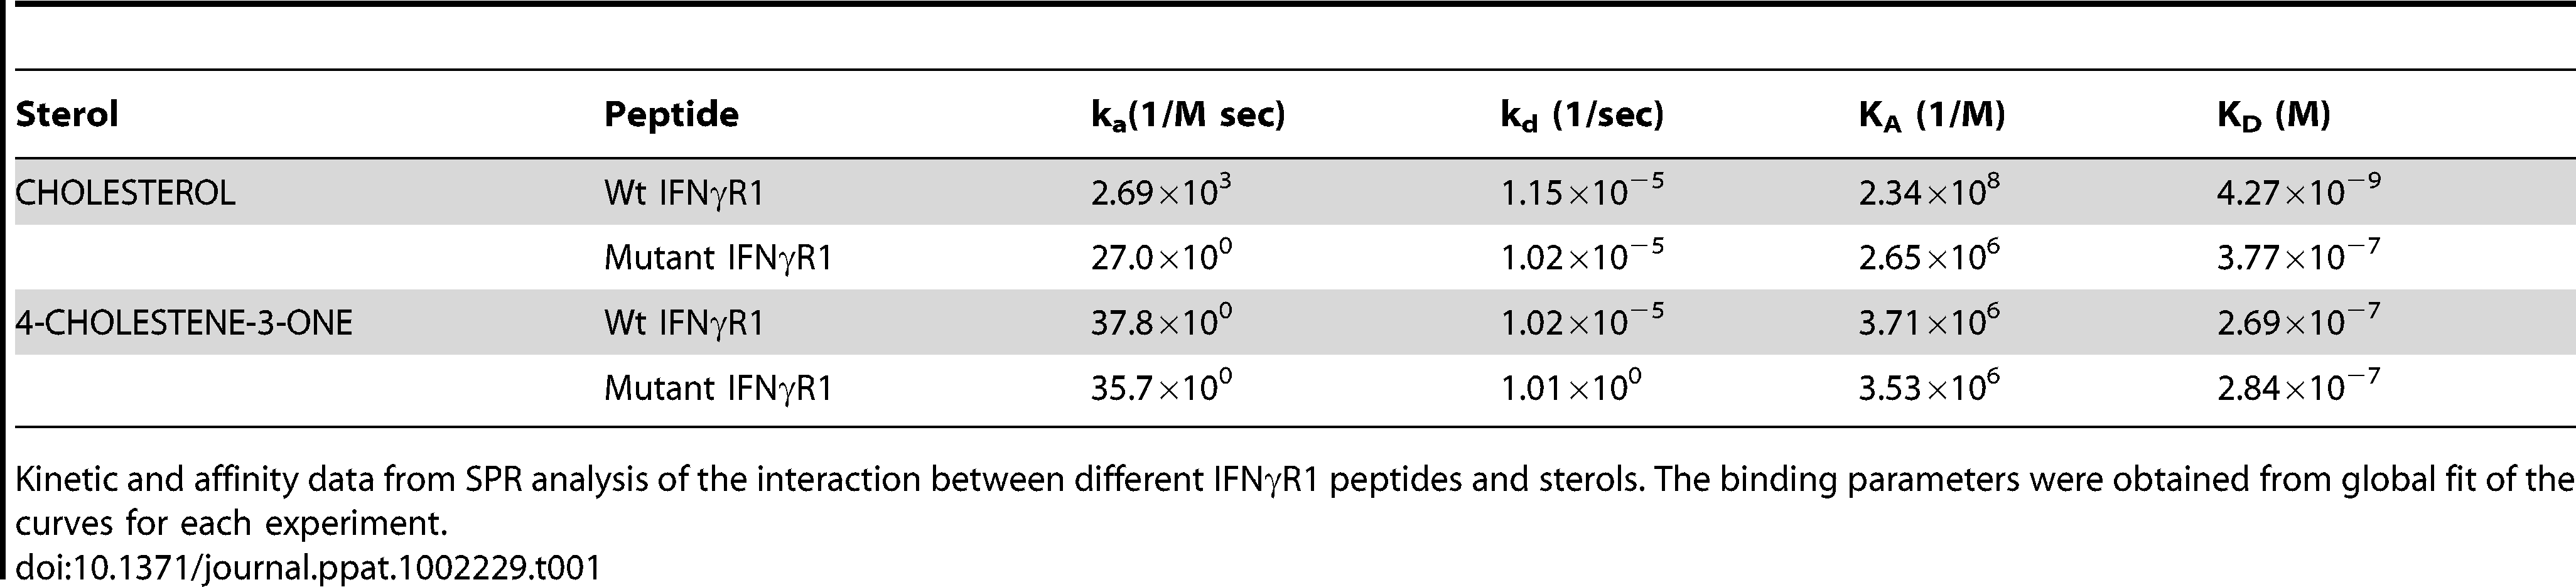 Summary of Binding parameters of IFNγR1 peptide-sterol interaction.